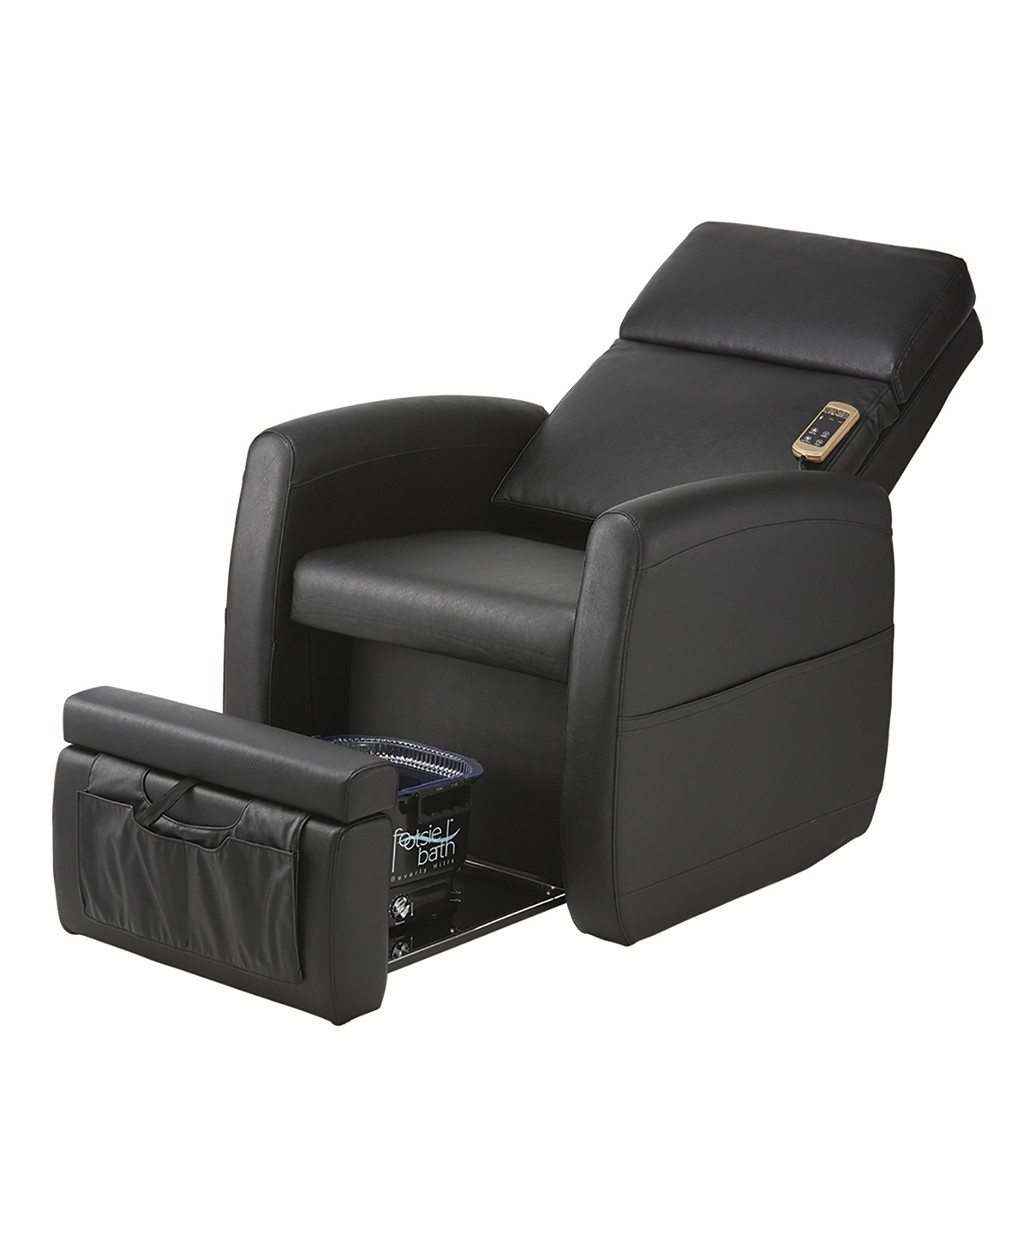 used no plumbing pedicure chair student desk combo spa chairs portable pipeless pibbs ps9 lounge w vibration massage